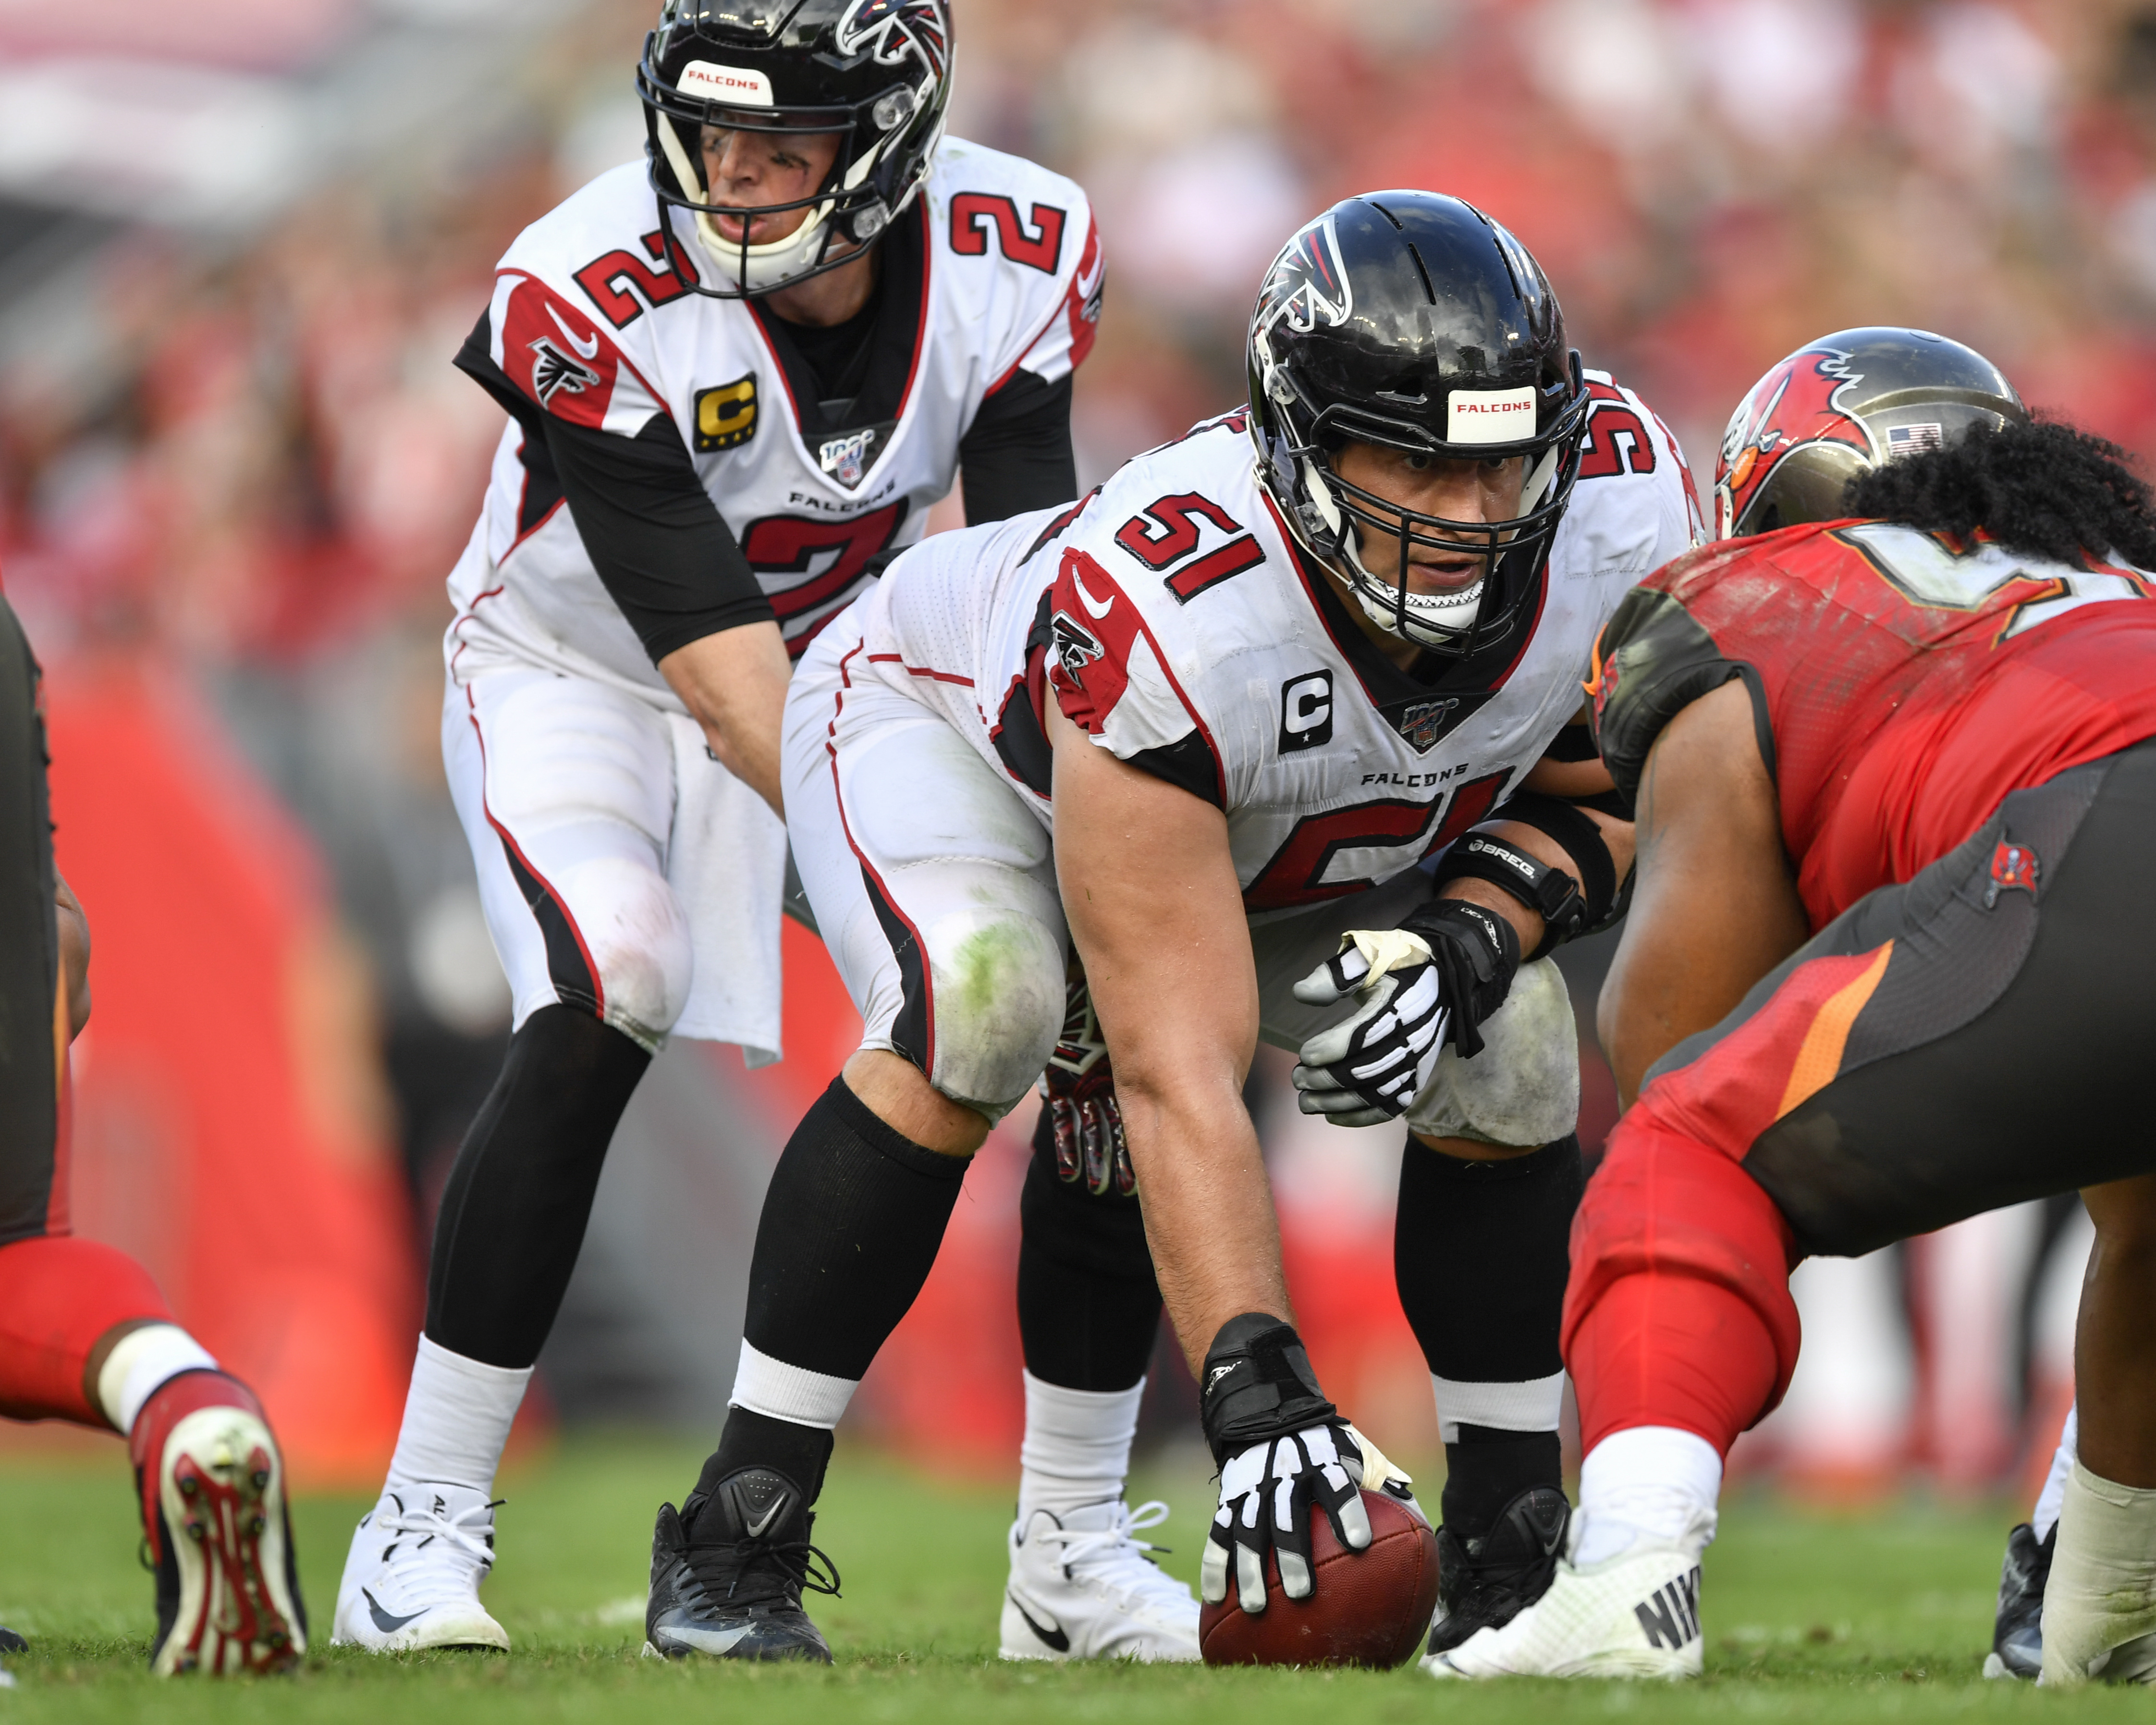 NFL: DEC 29 Falcons at Buccaneers